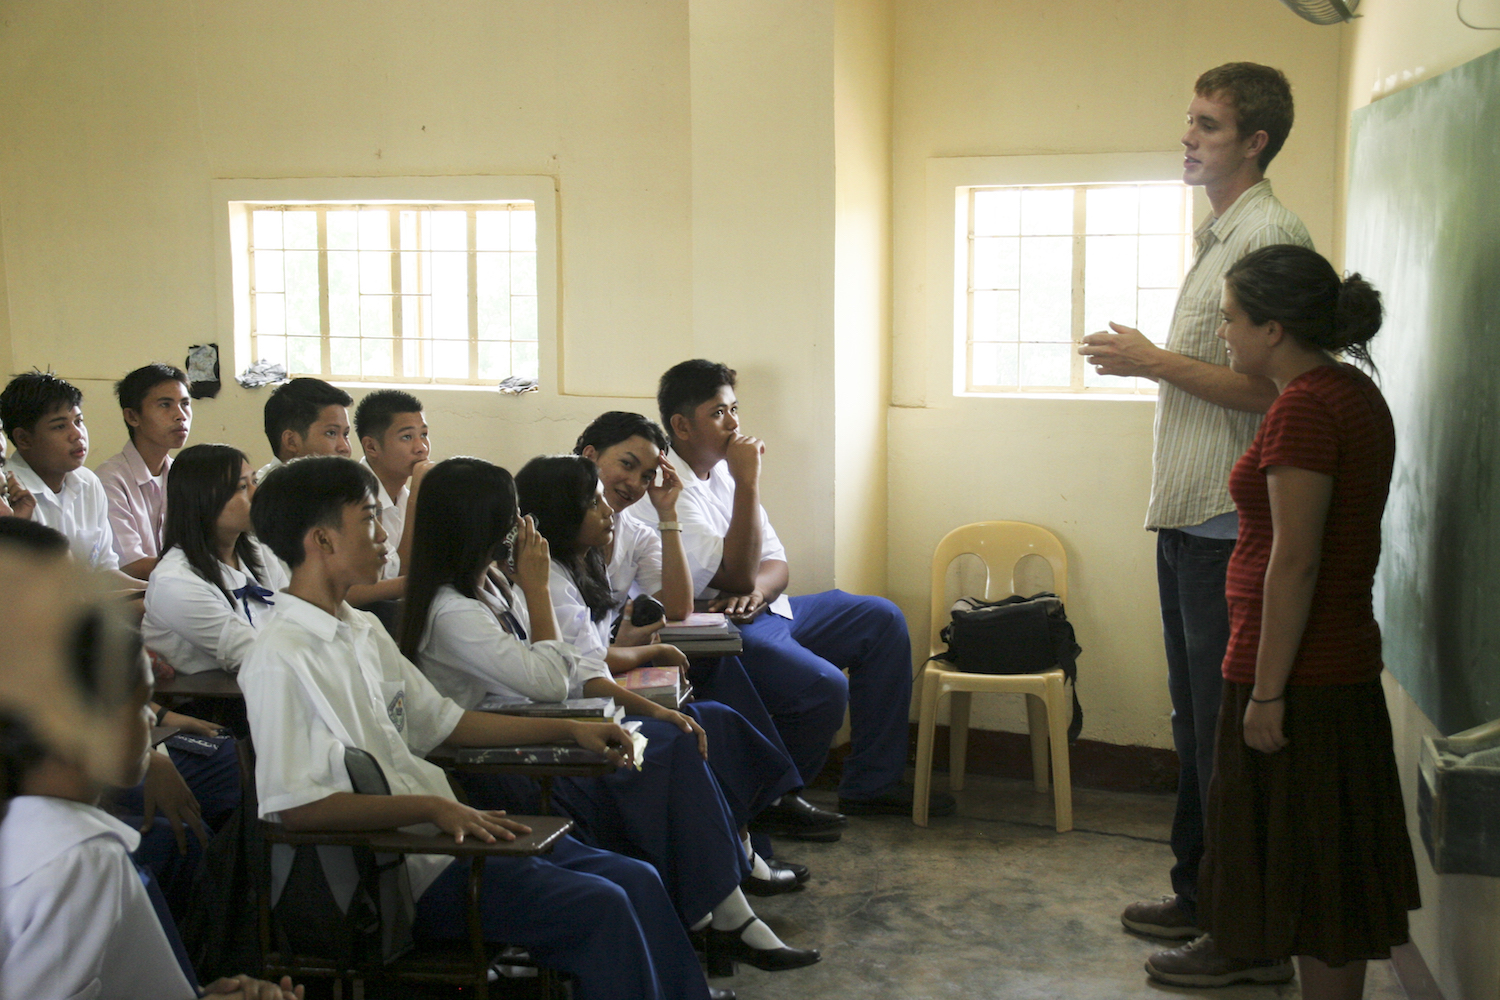 A year after his Internship, Brett went on his first Immersion trip to the Philippines in 2007.